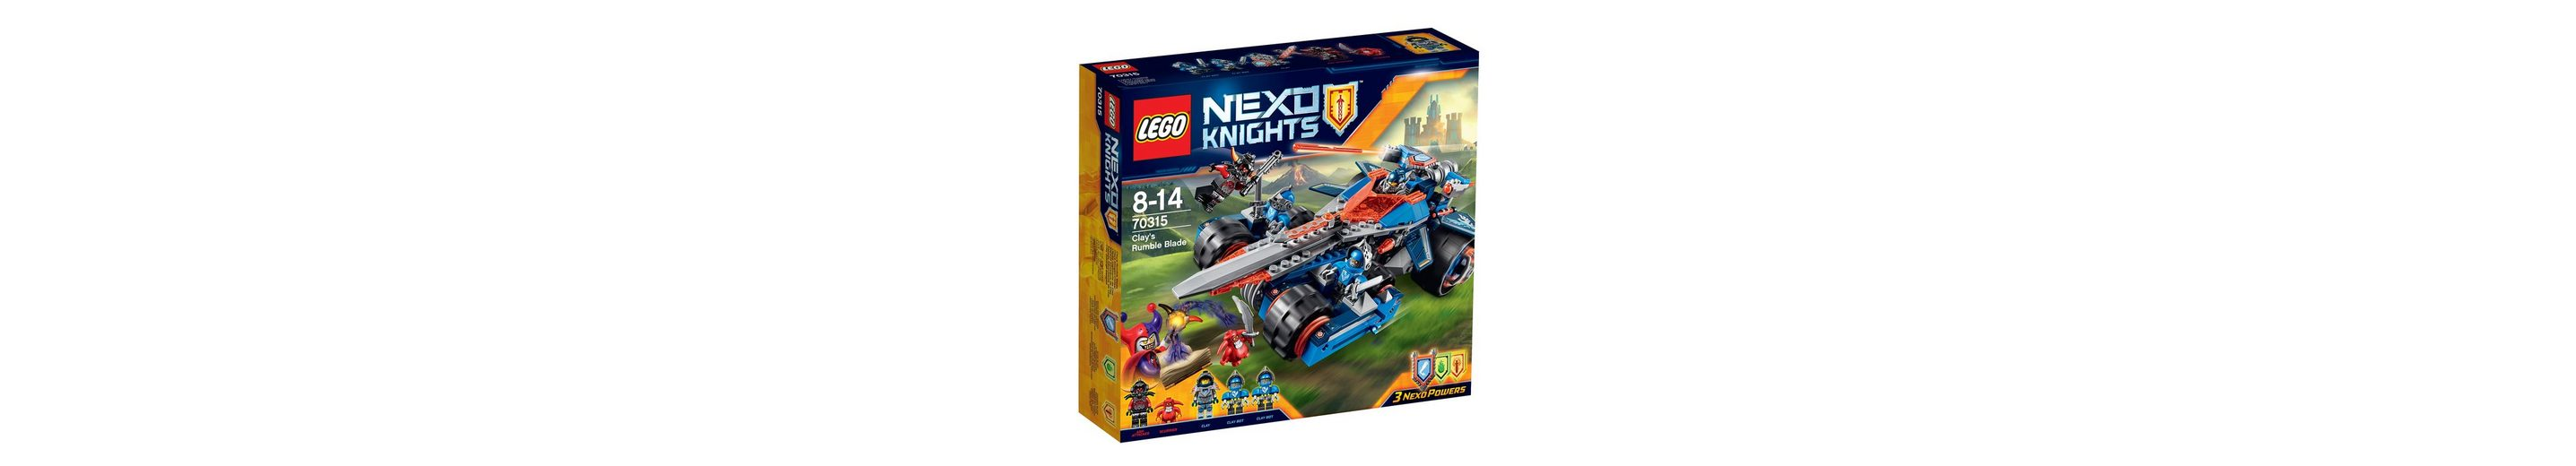 LEGO® Clays Klingen-Cruiser (70315), »NEXO KNIGHTS™«